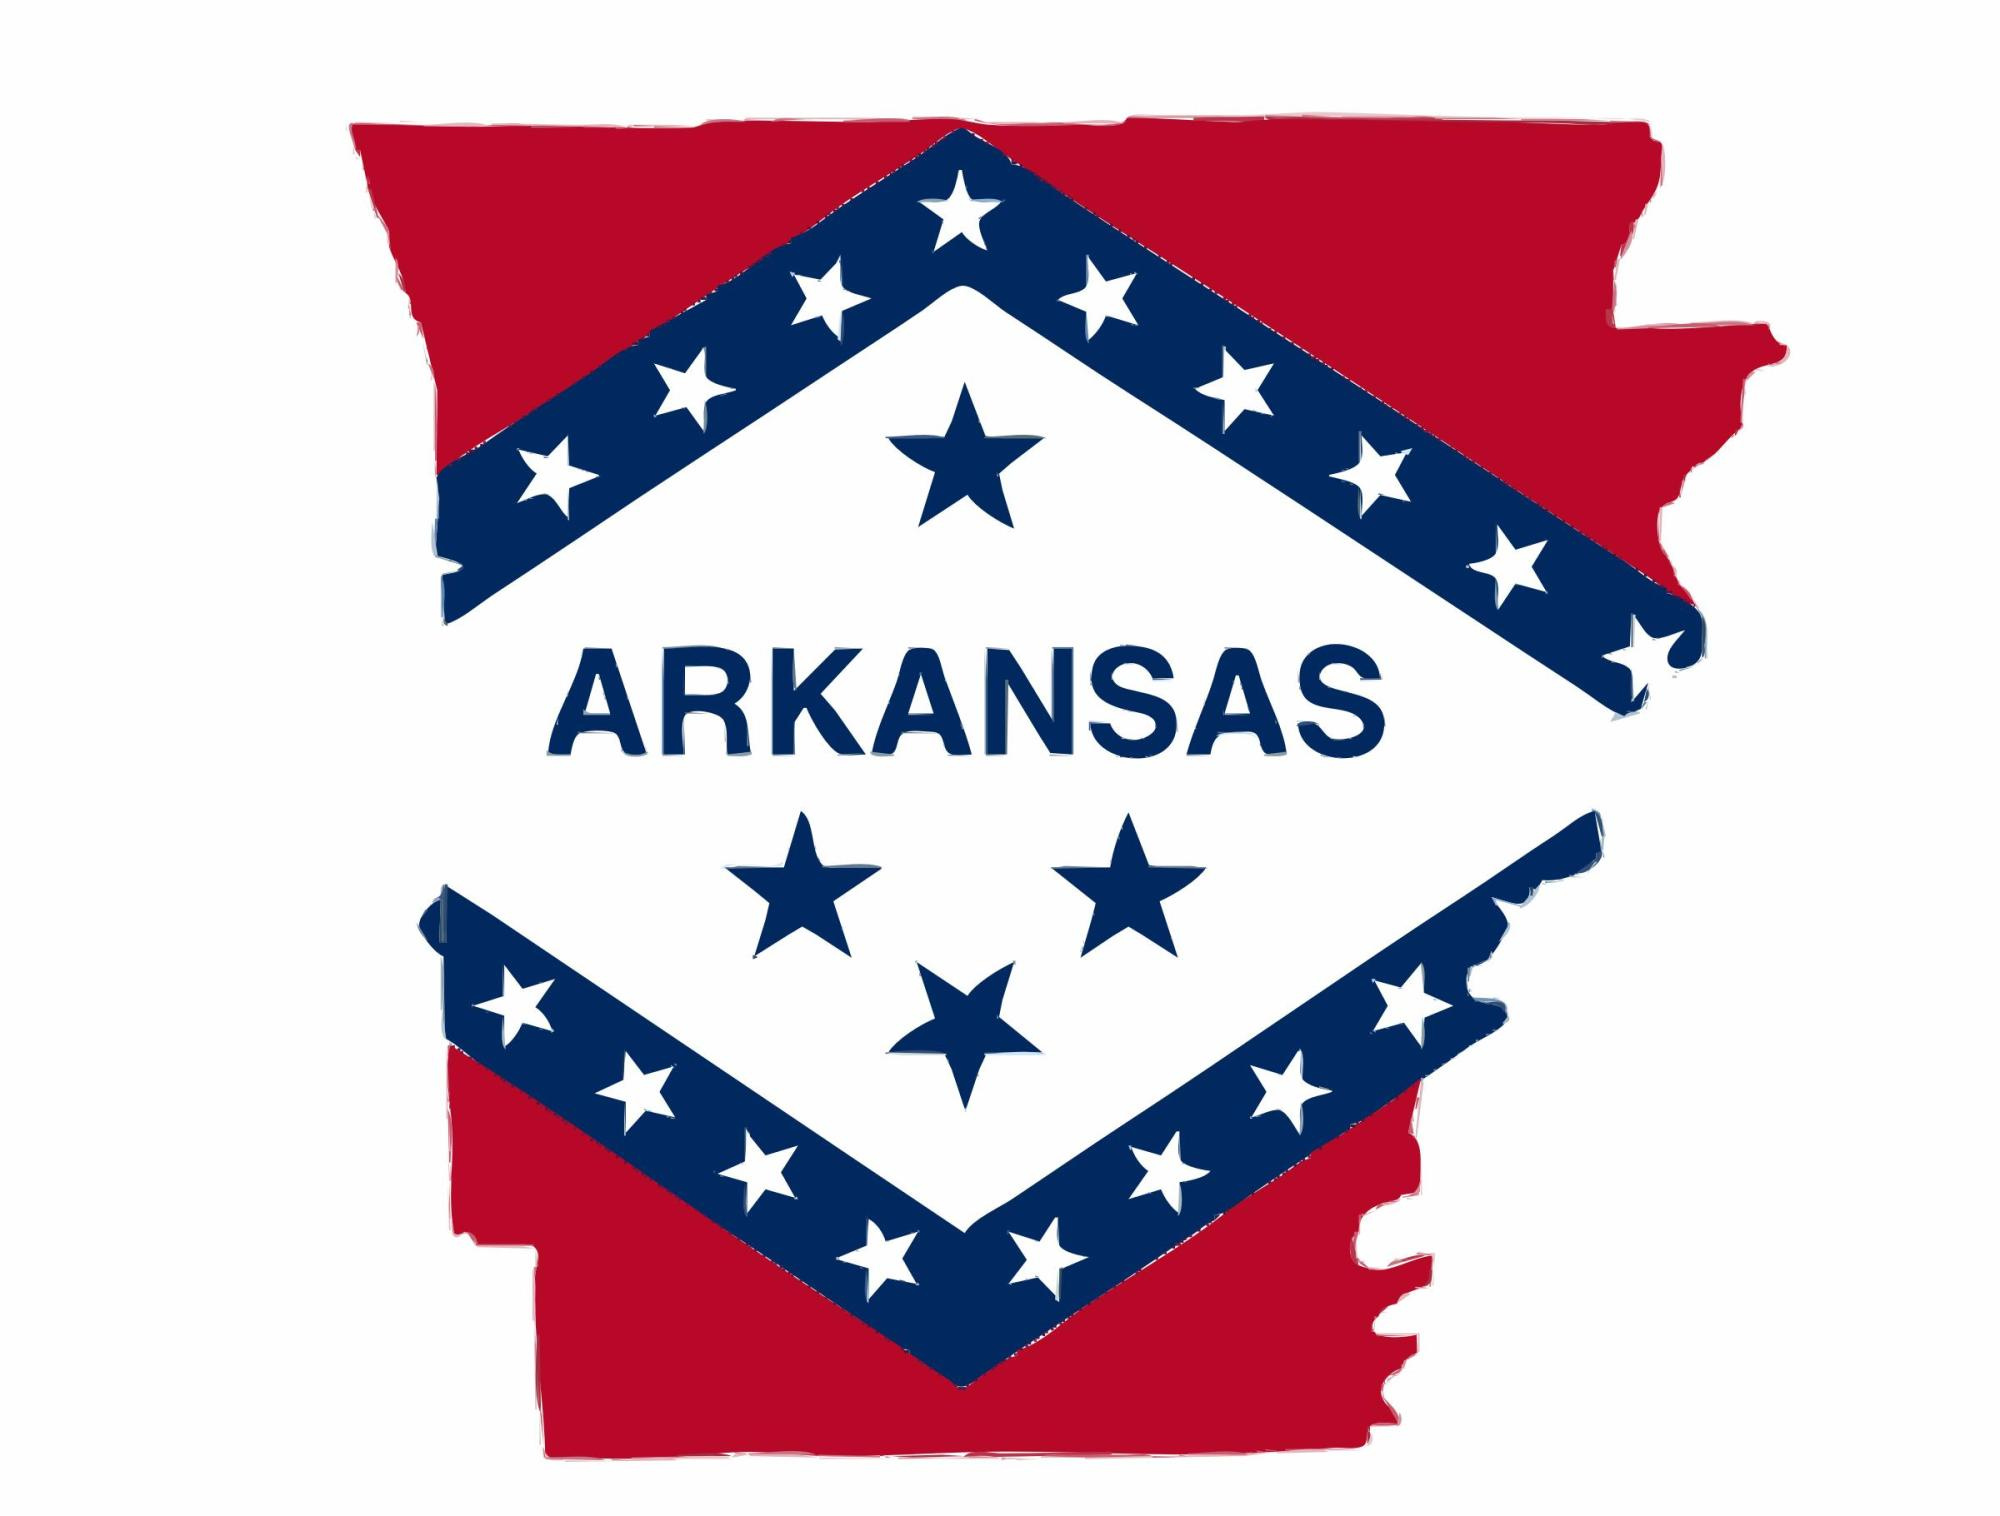 hight resolution of arkansas travel clipart images arkansas icons png free png and icons downloads jpg